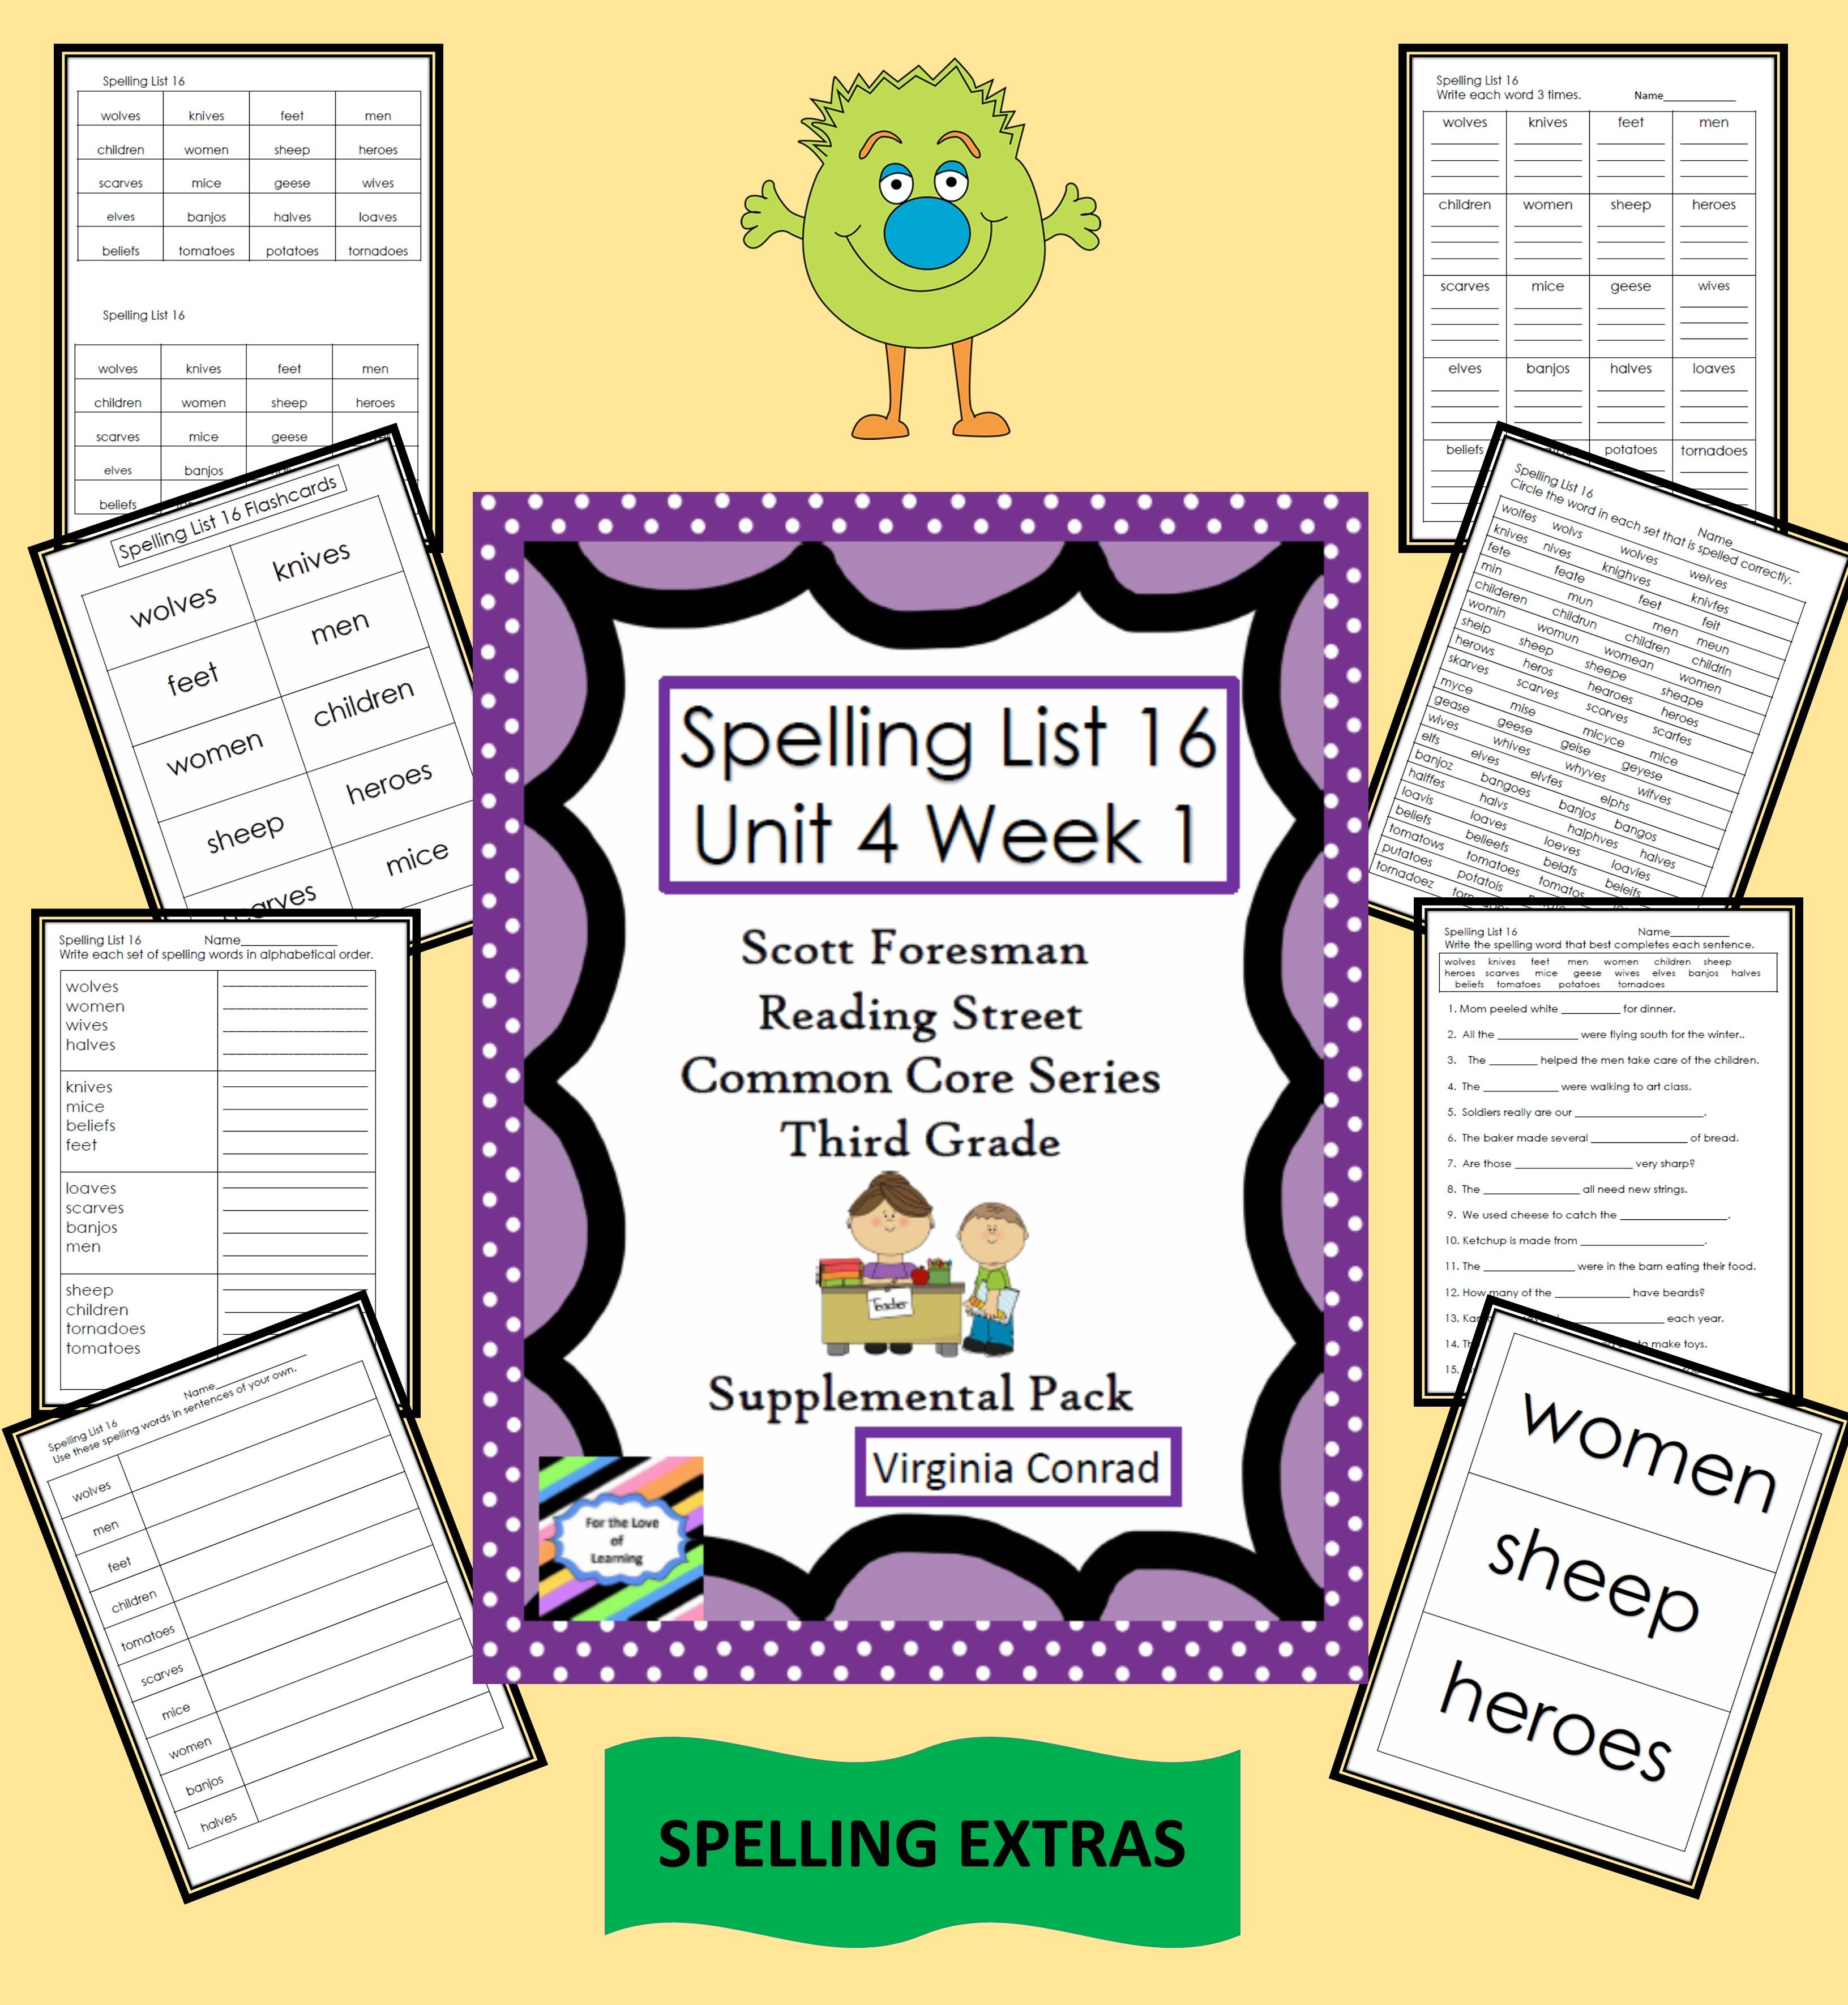 Supplemental Materials For Spelling List 16 Unit 4 Week 1